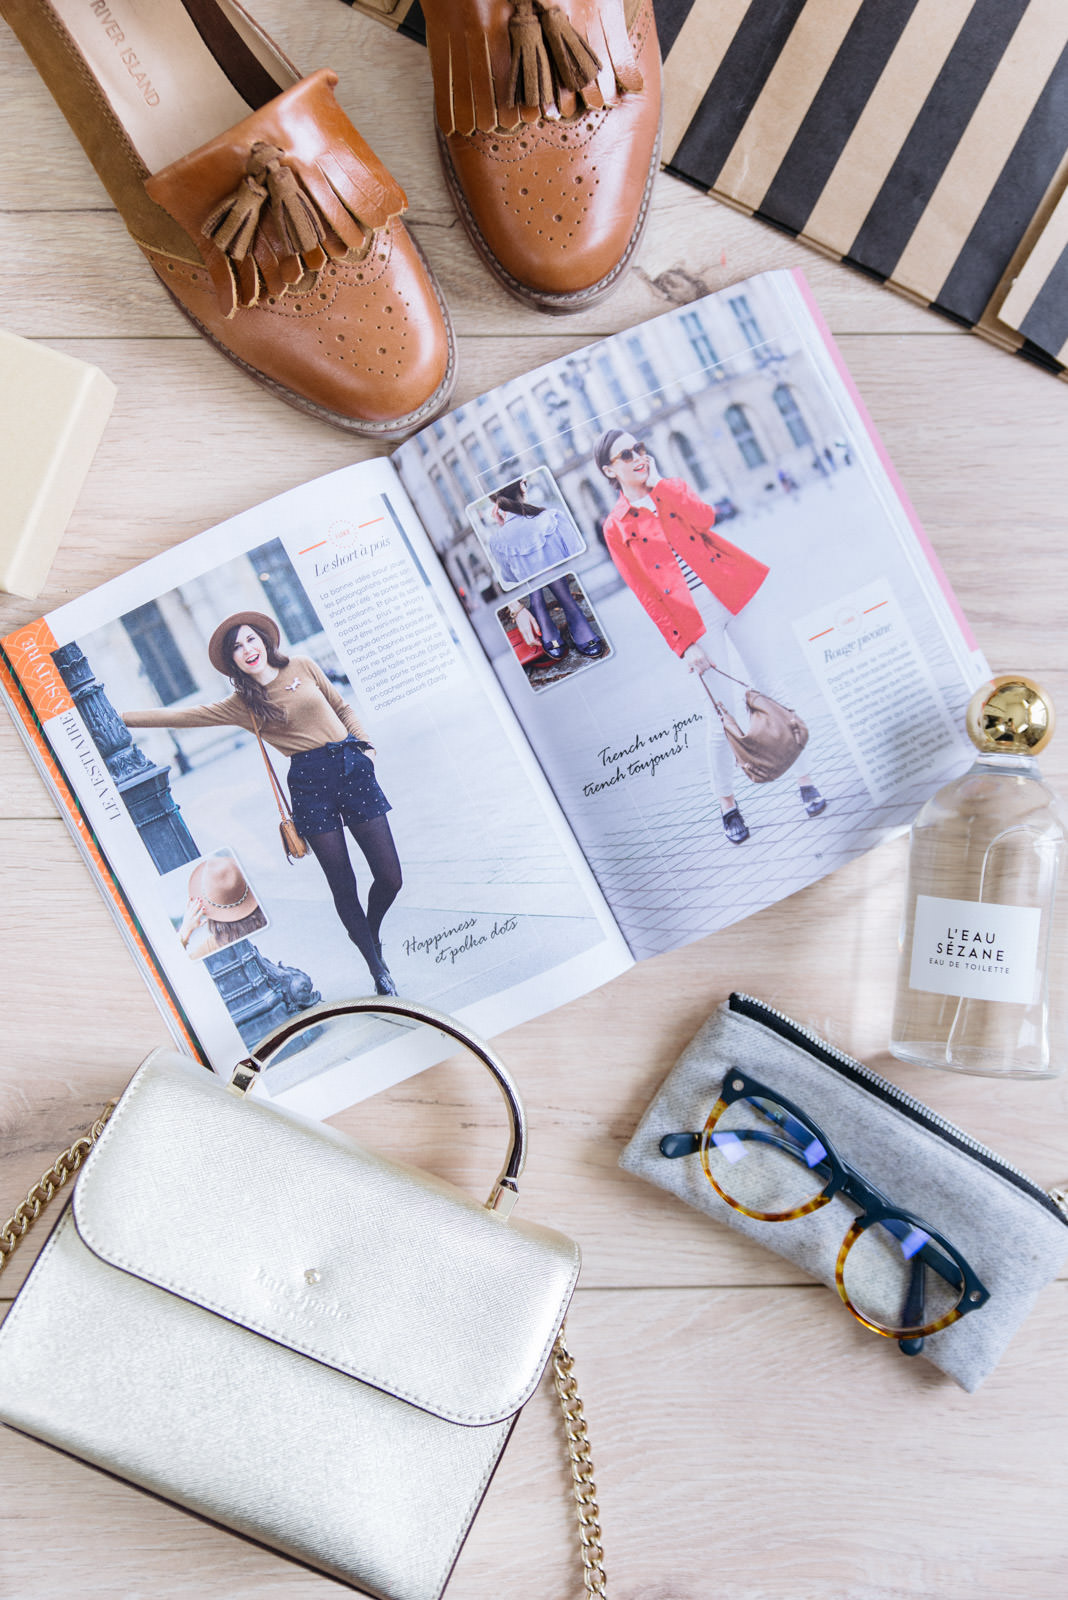 Blog-Mode-And-The-City-Lifestyle-Cinq-Petites-Choses-187-mode-and-the-city-as-you-like4